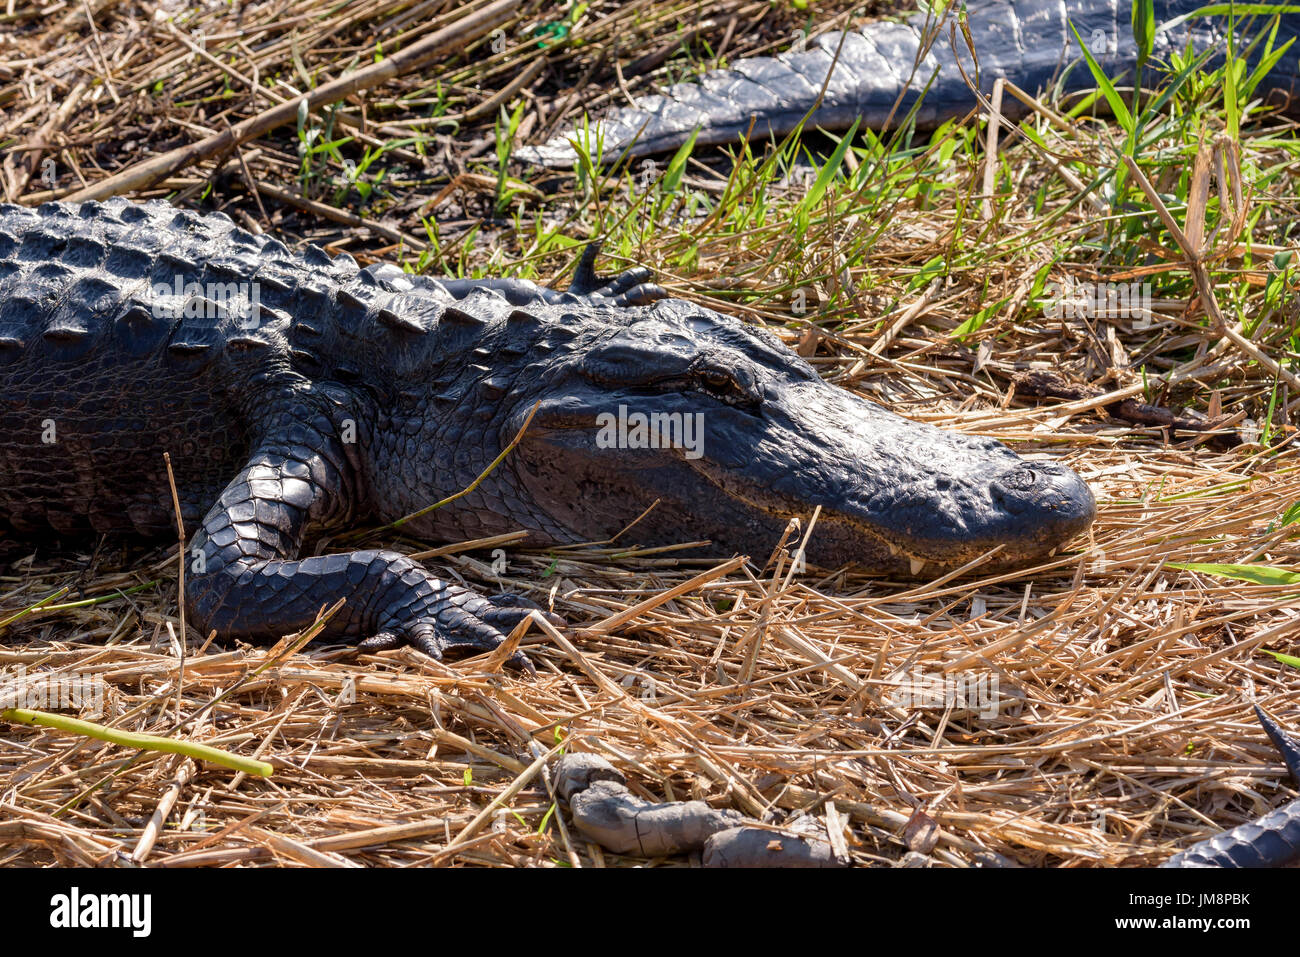 Trail Gator Stock Photos Amp Trail Gator Stock Images Alamy